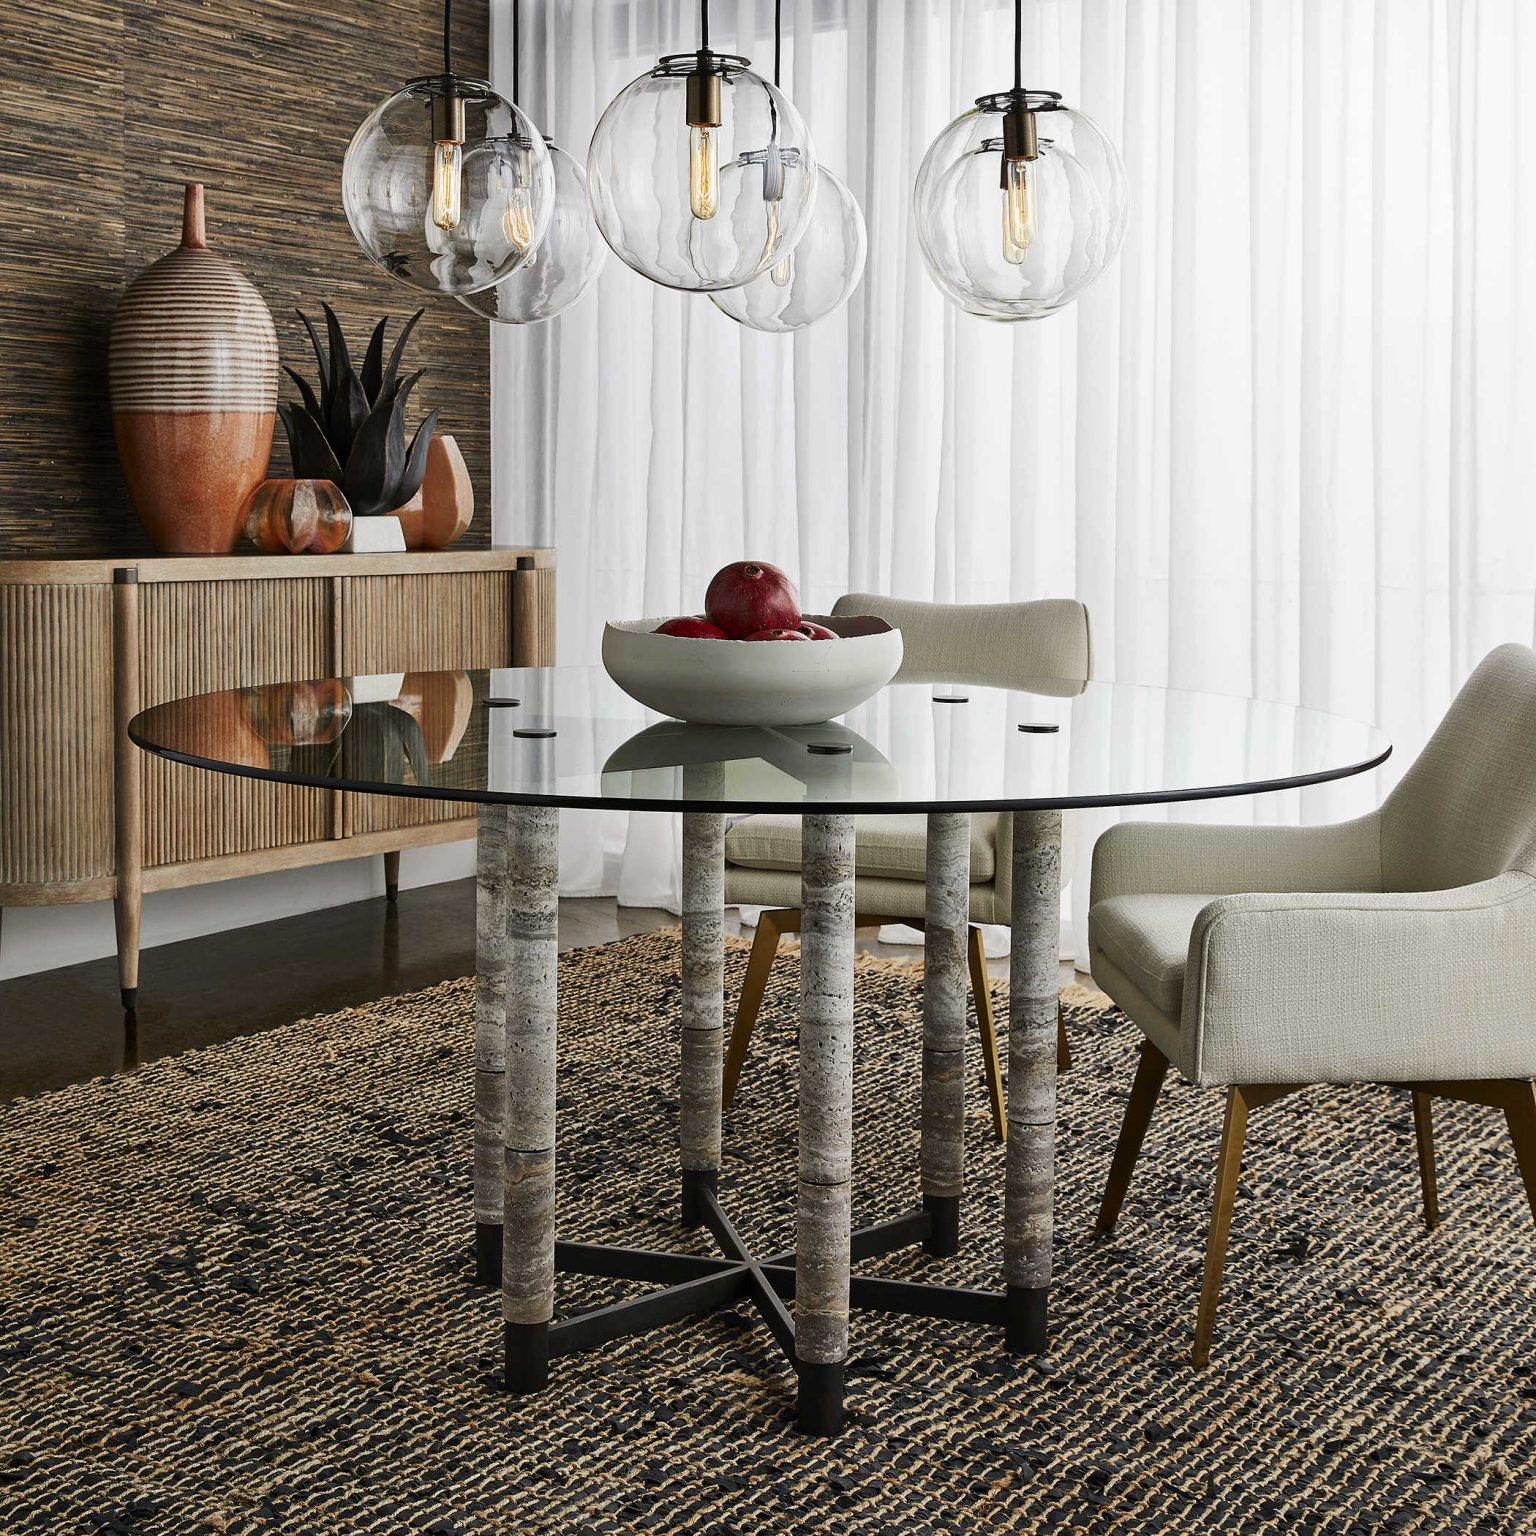 Mi-century modern dining table is sophisticated and retro